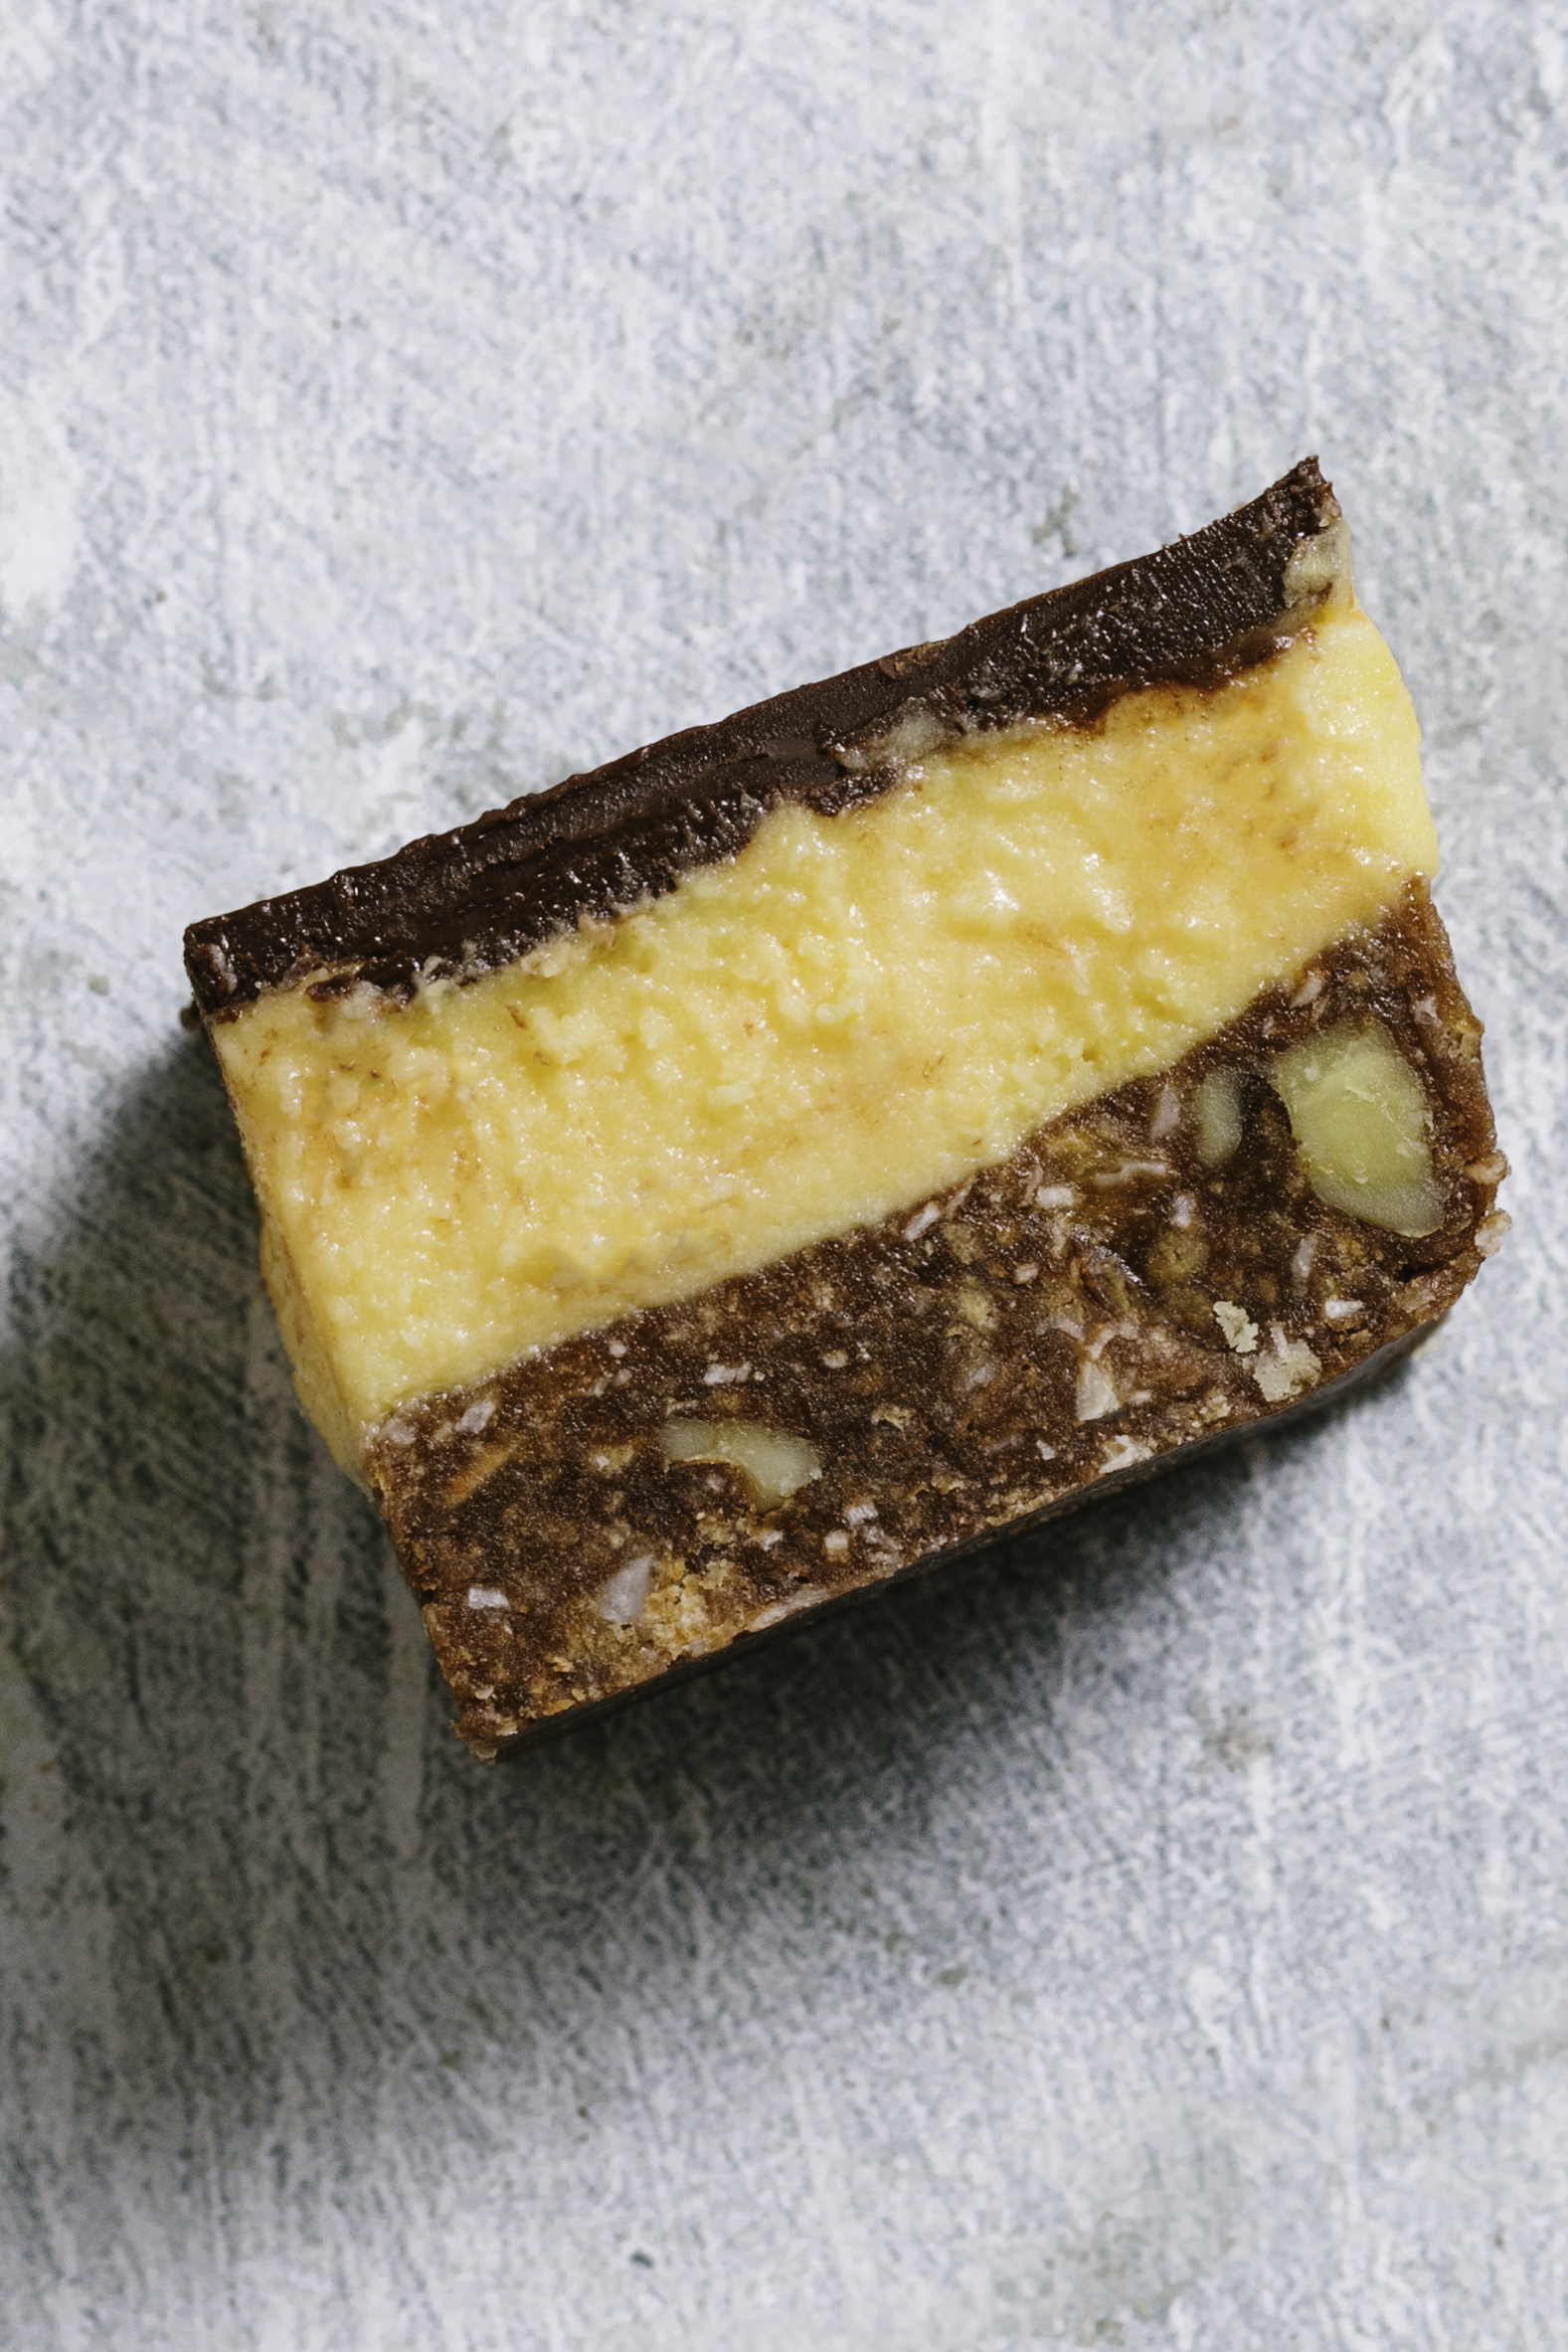 Close up of a nanaimo bar on its side.